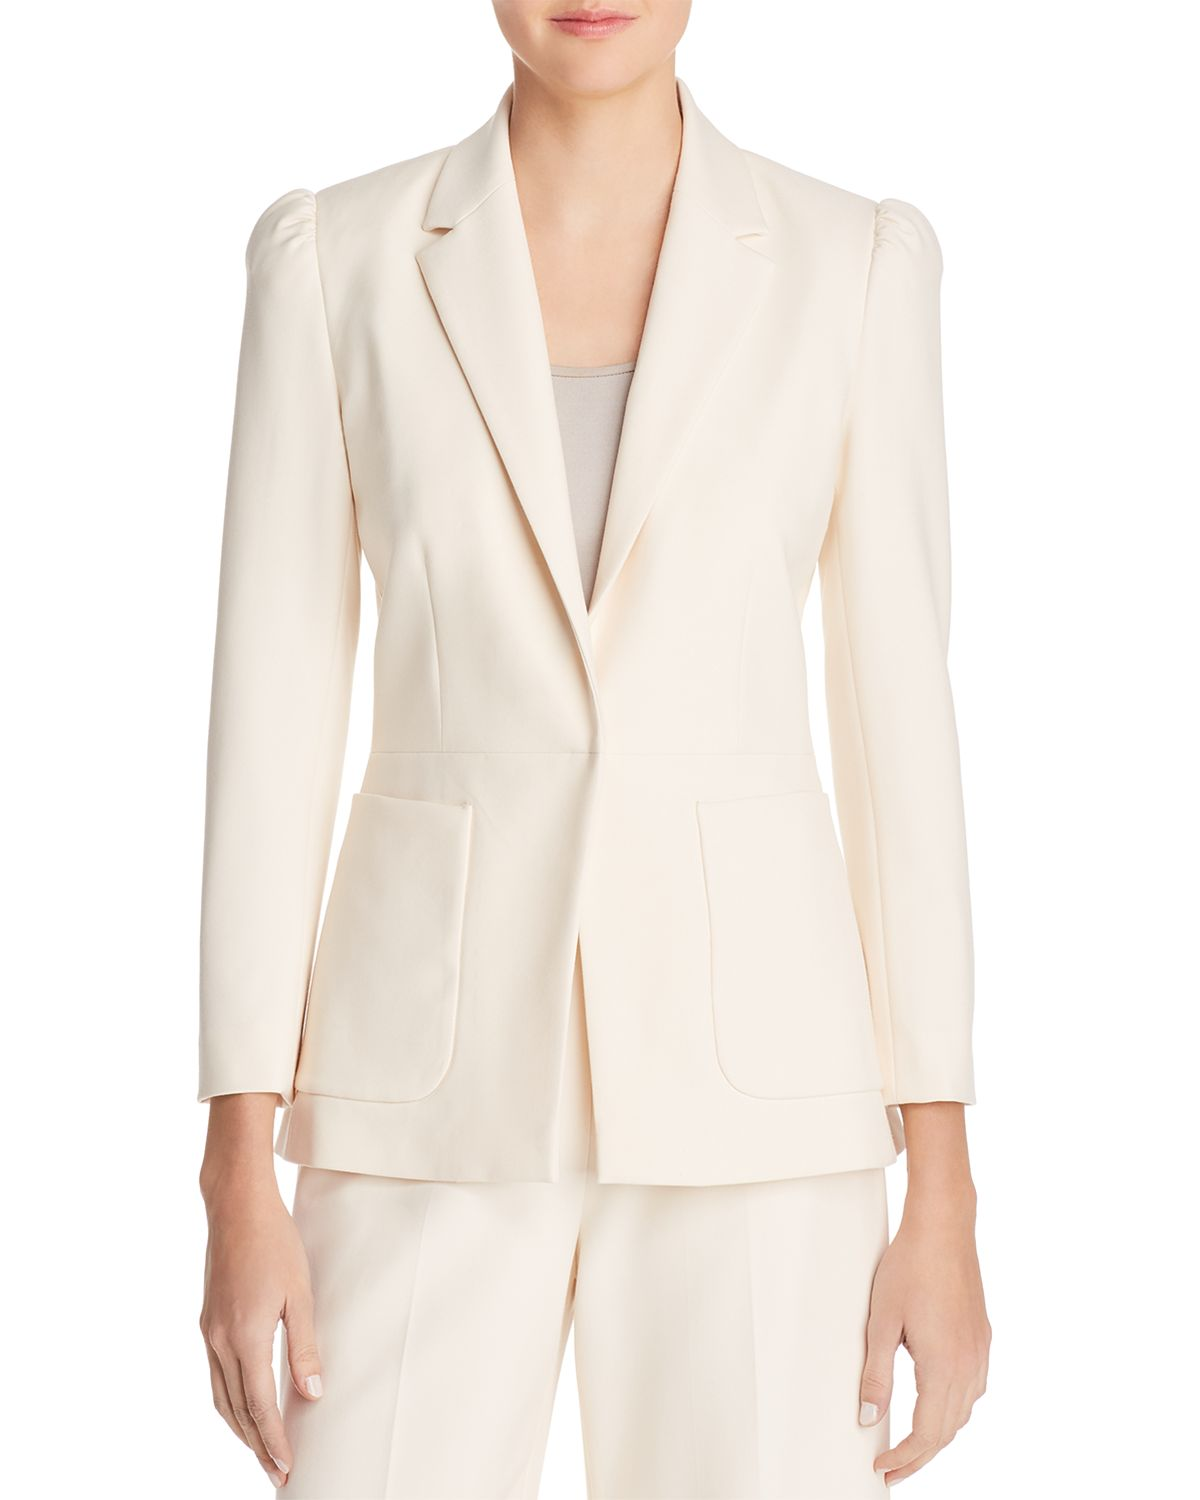 Tailored Blazer   100 Percents Exclusive by Rebecca Taylor